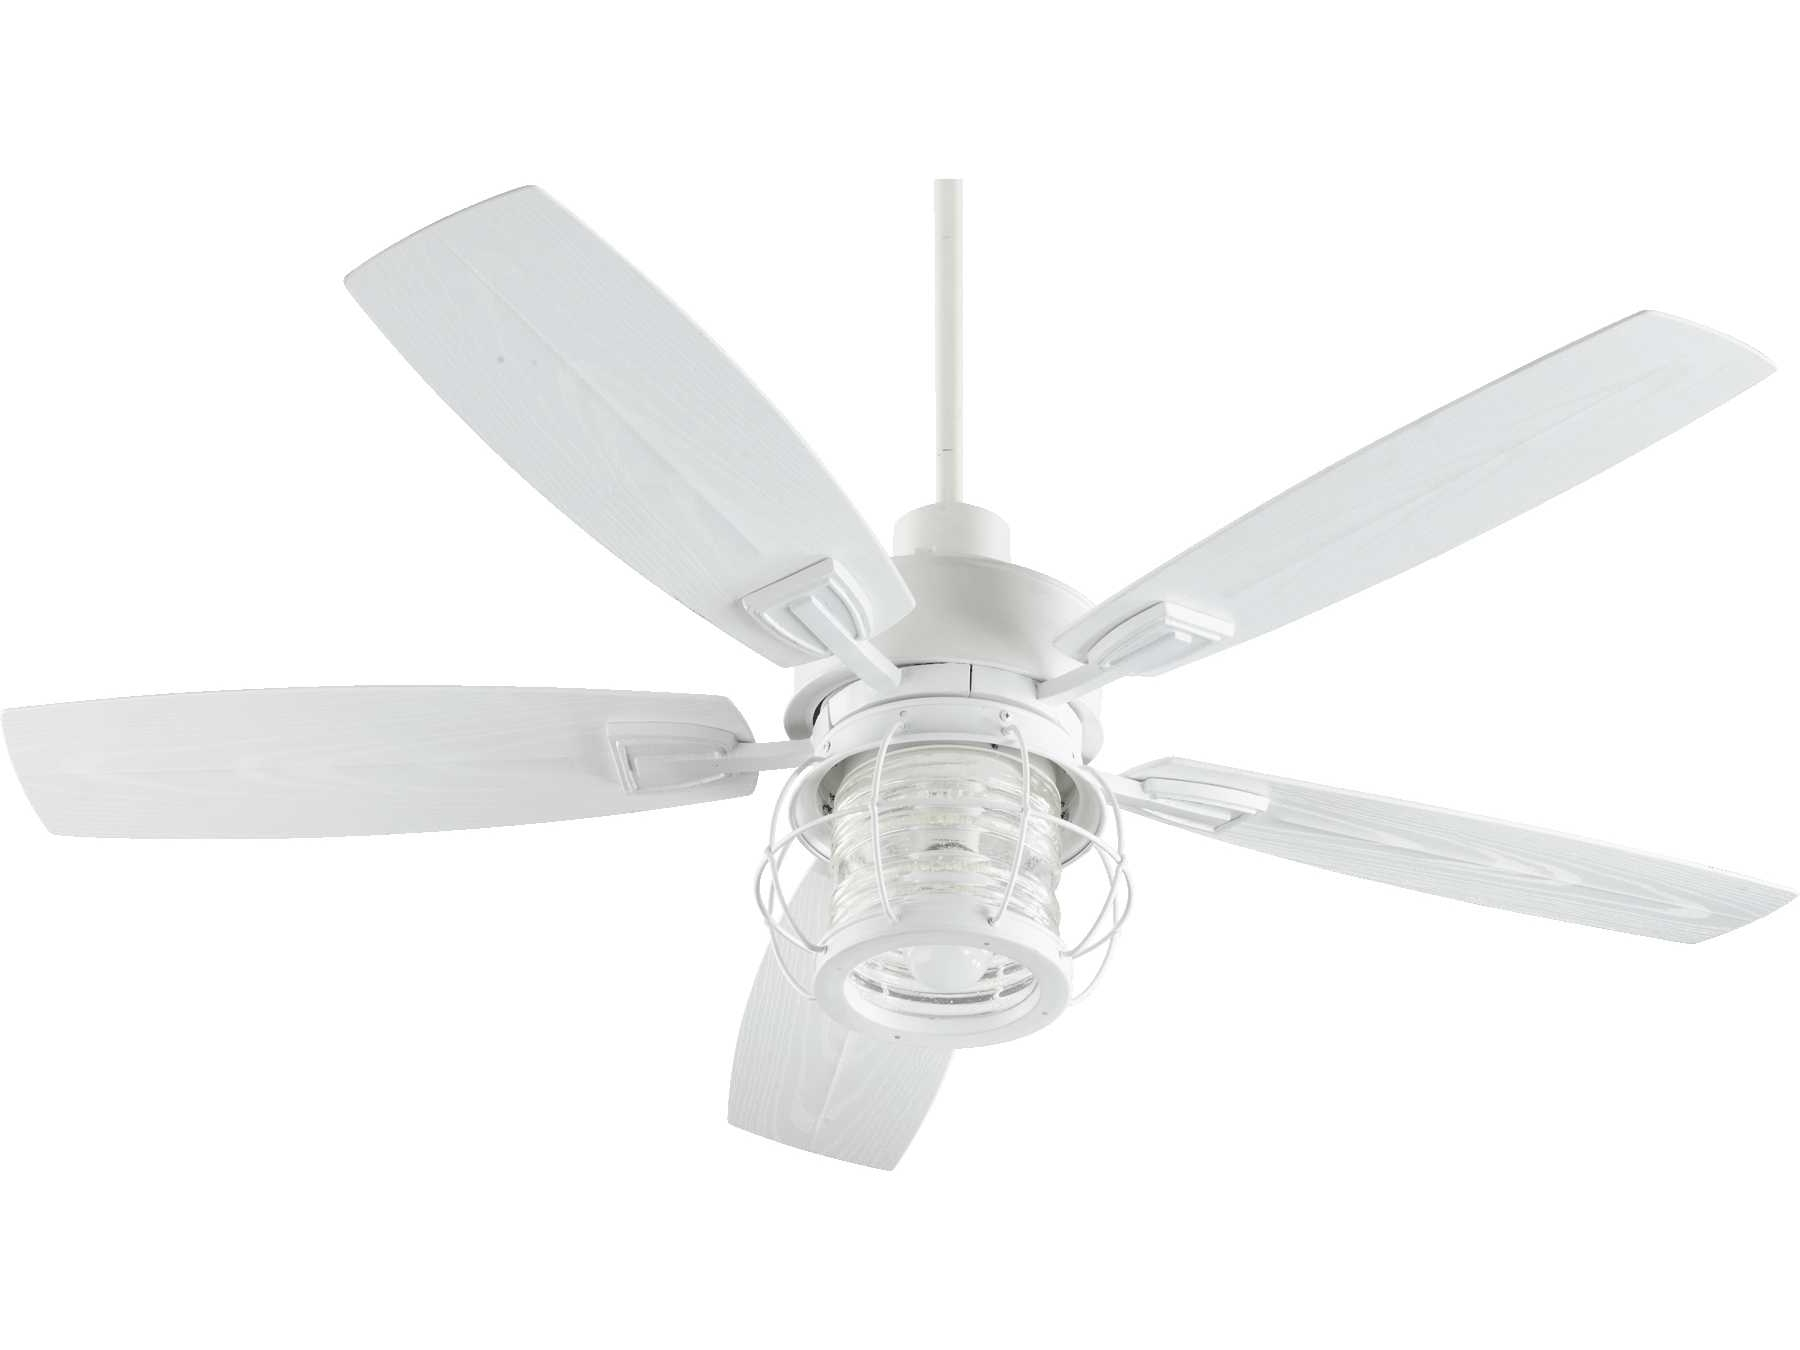 Quorum International Galveston Studio White 52 Inch Outdoor Ceiling Intended For Most Recent Quorum Outdoor Ceiling Fans (View 15 of 20)